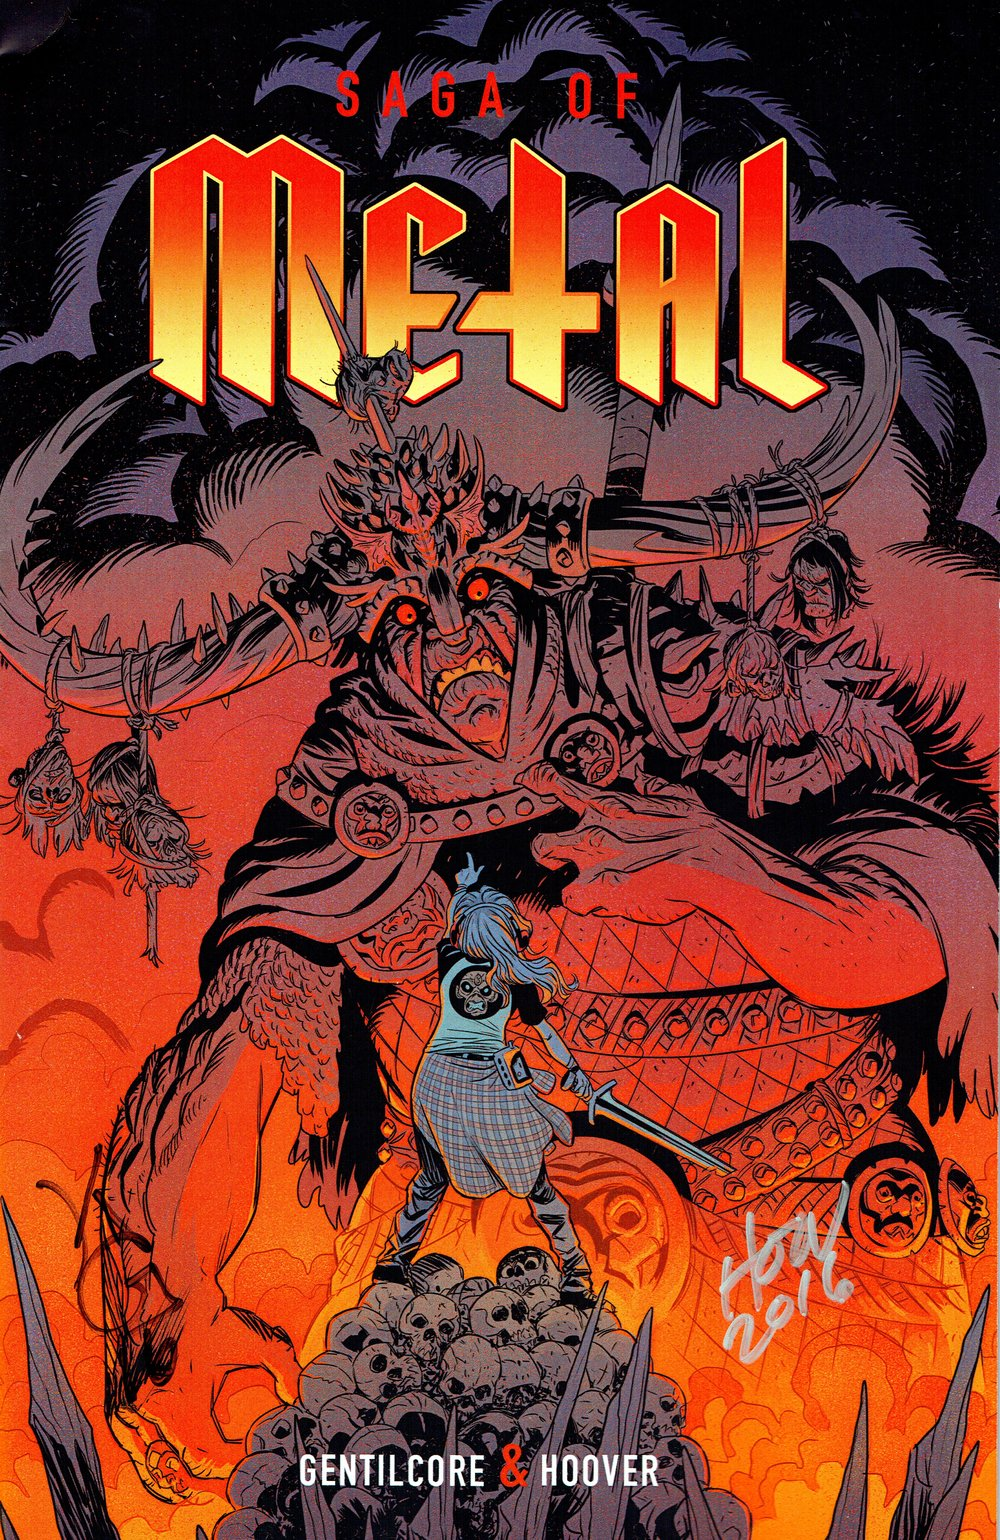 Saga of Metal #1 from Kevin Gentilcore, Patrick Hoover, Robert Elrod, and Matt Smith.